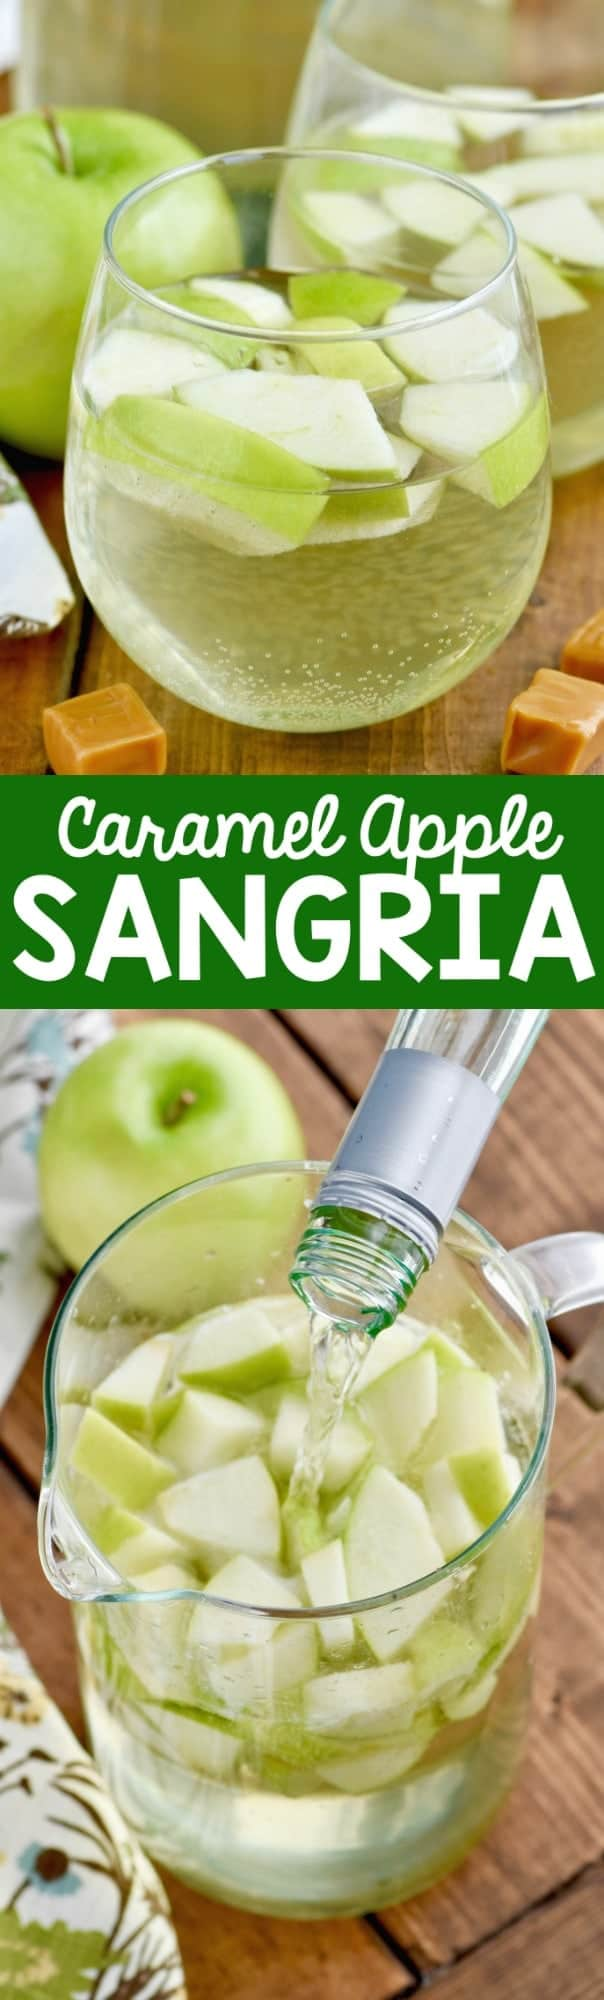 The Caramel Apple Sangria has sliced apple slices in the pitcher and in the glass.